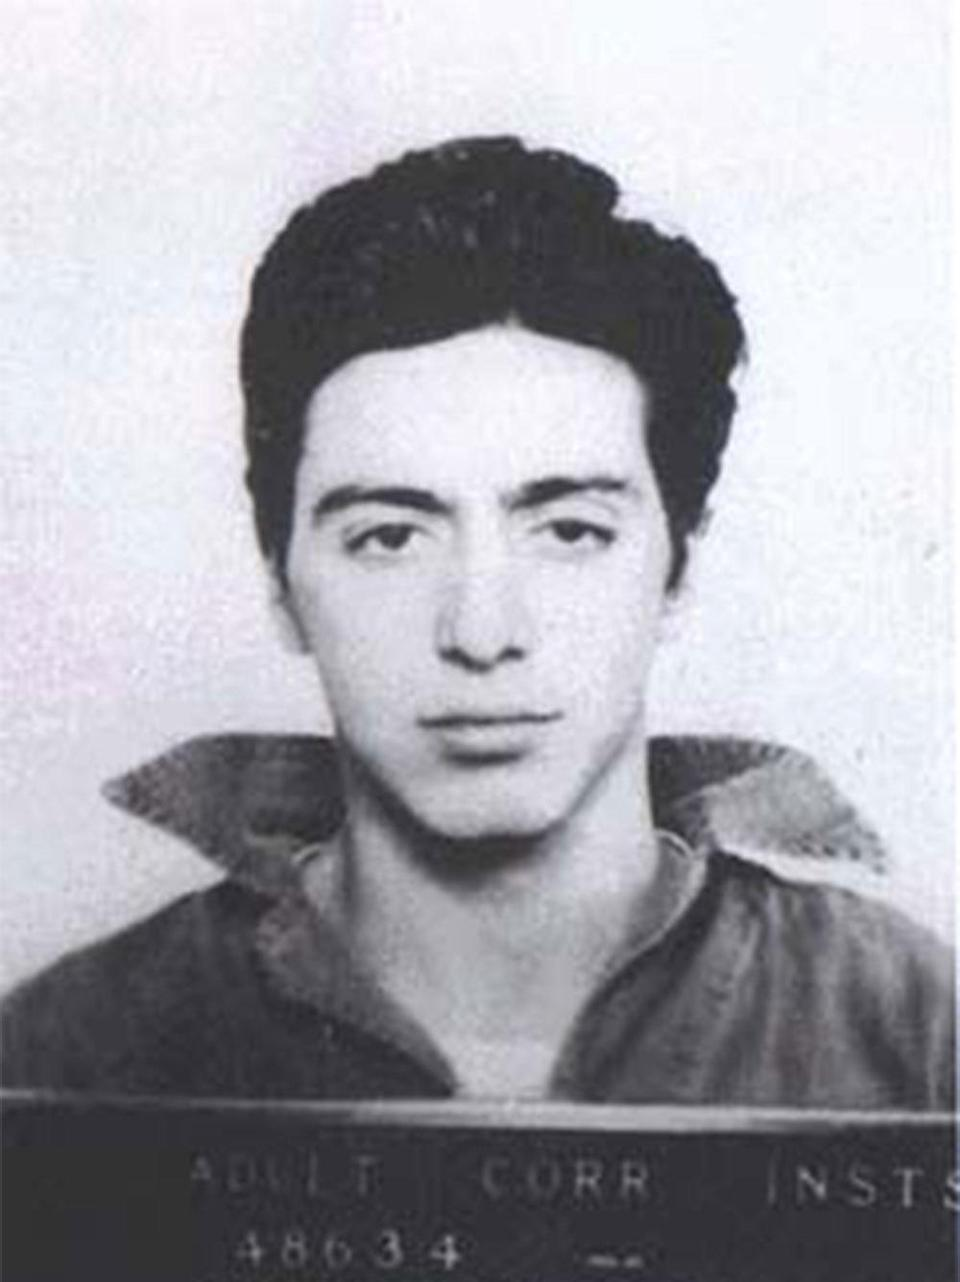 Al Pacino The acting legend just 21 when he was picked up by the police 1961 and arrested for carrying a concealed weapon.